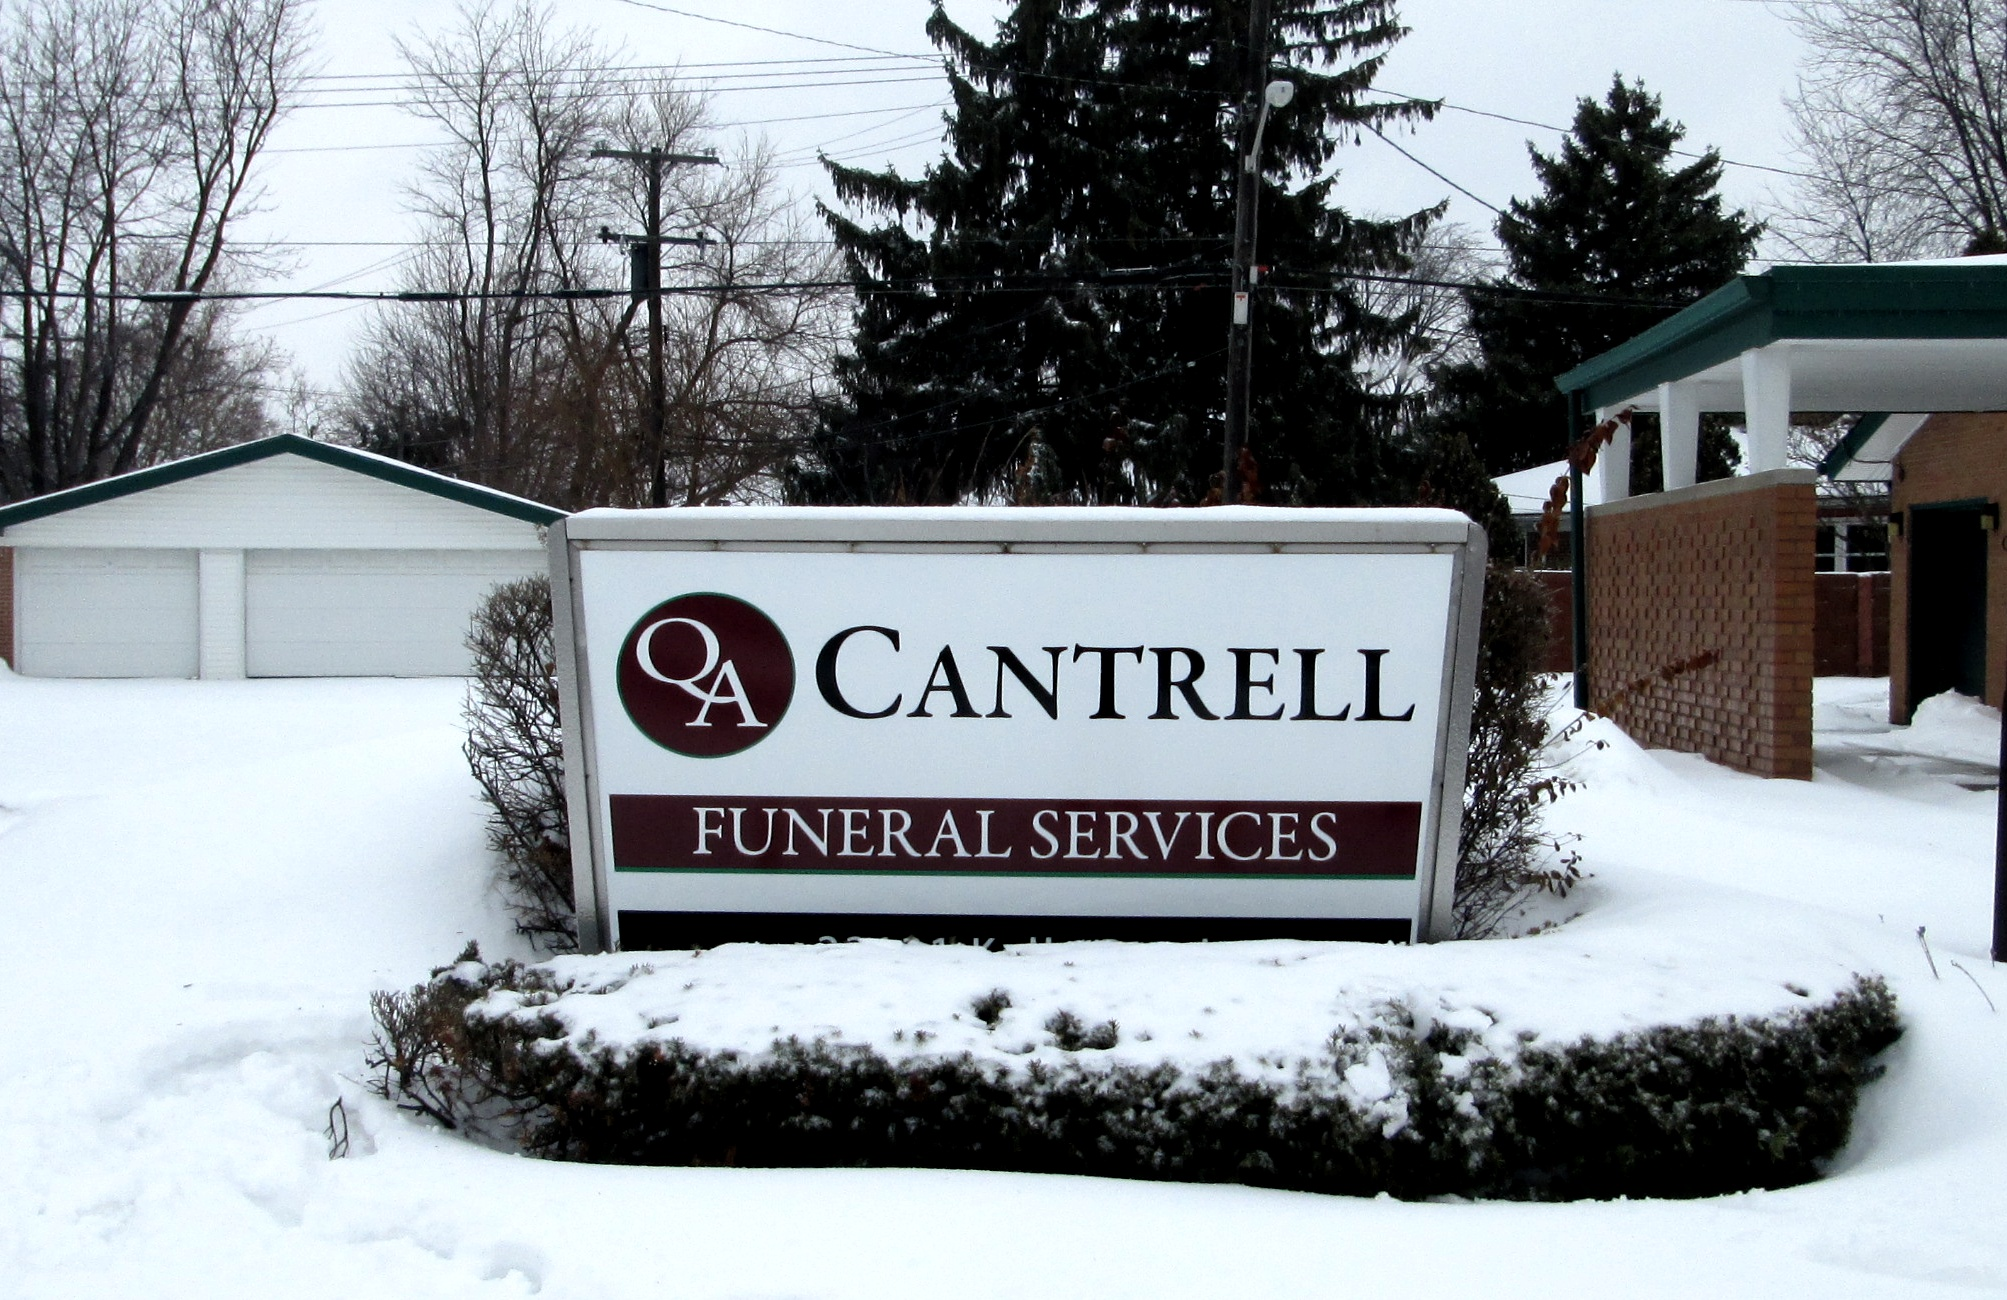 Cantrell Funeral Services | Lawn Sign